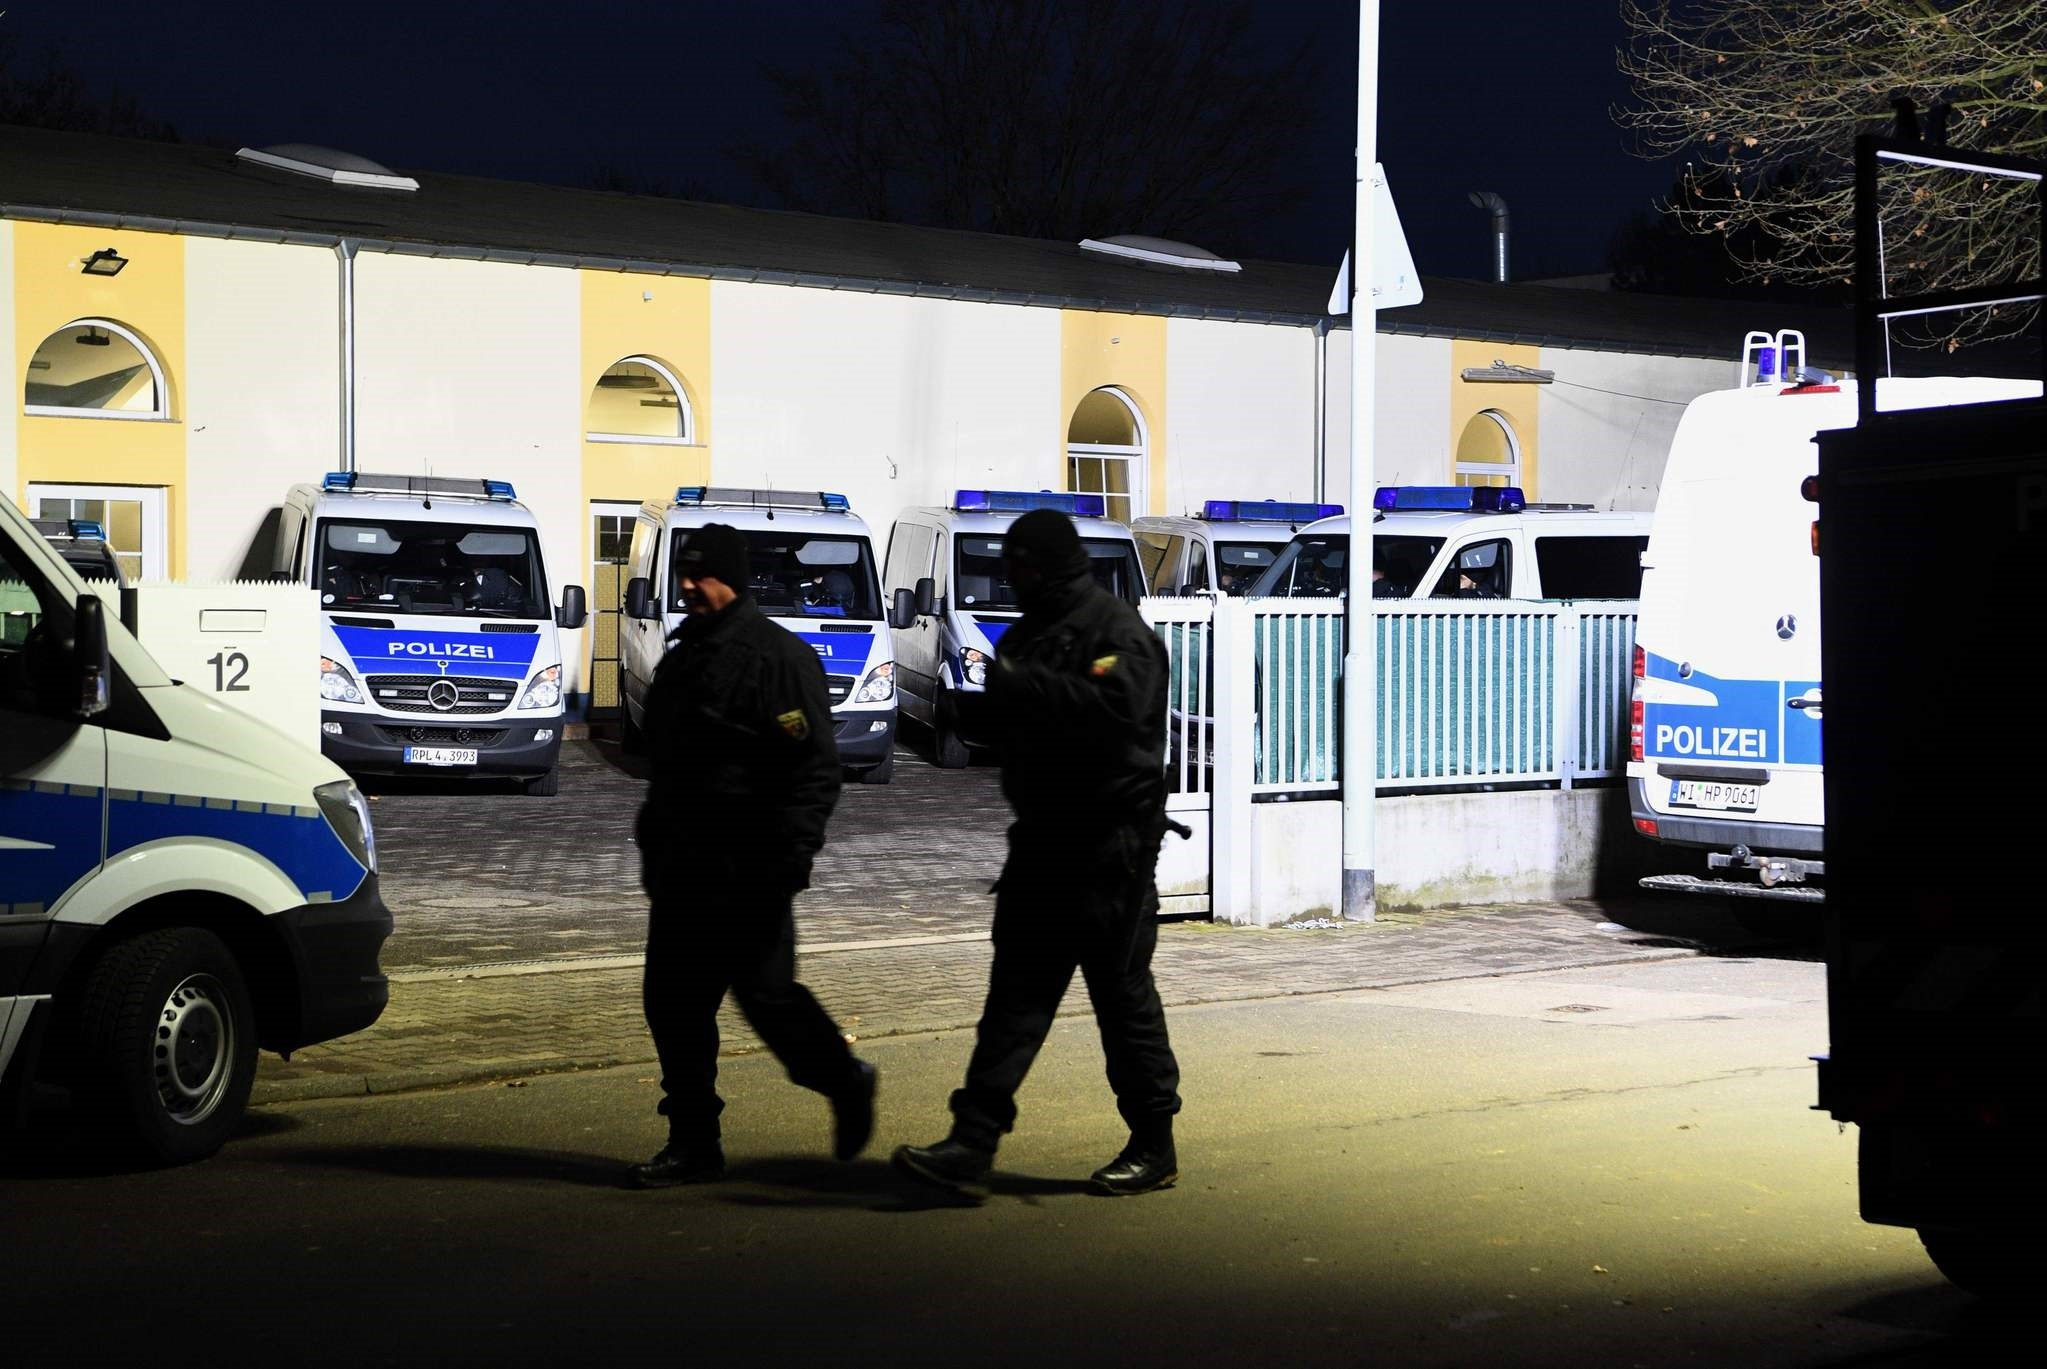 Policemen walk past their cars standing on the grounds of the Bilal mosque in the Griesheim district of Frankfurt am Main, western Germany, on February 1, 2017. (AFP Photo)